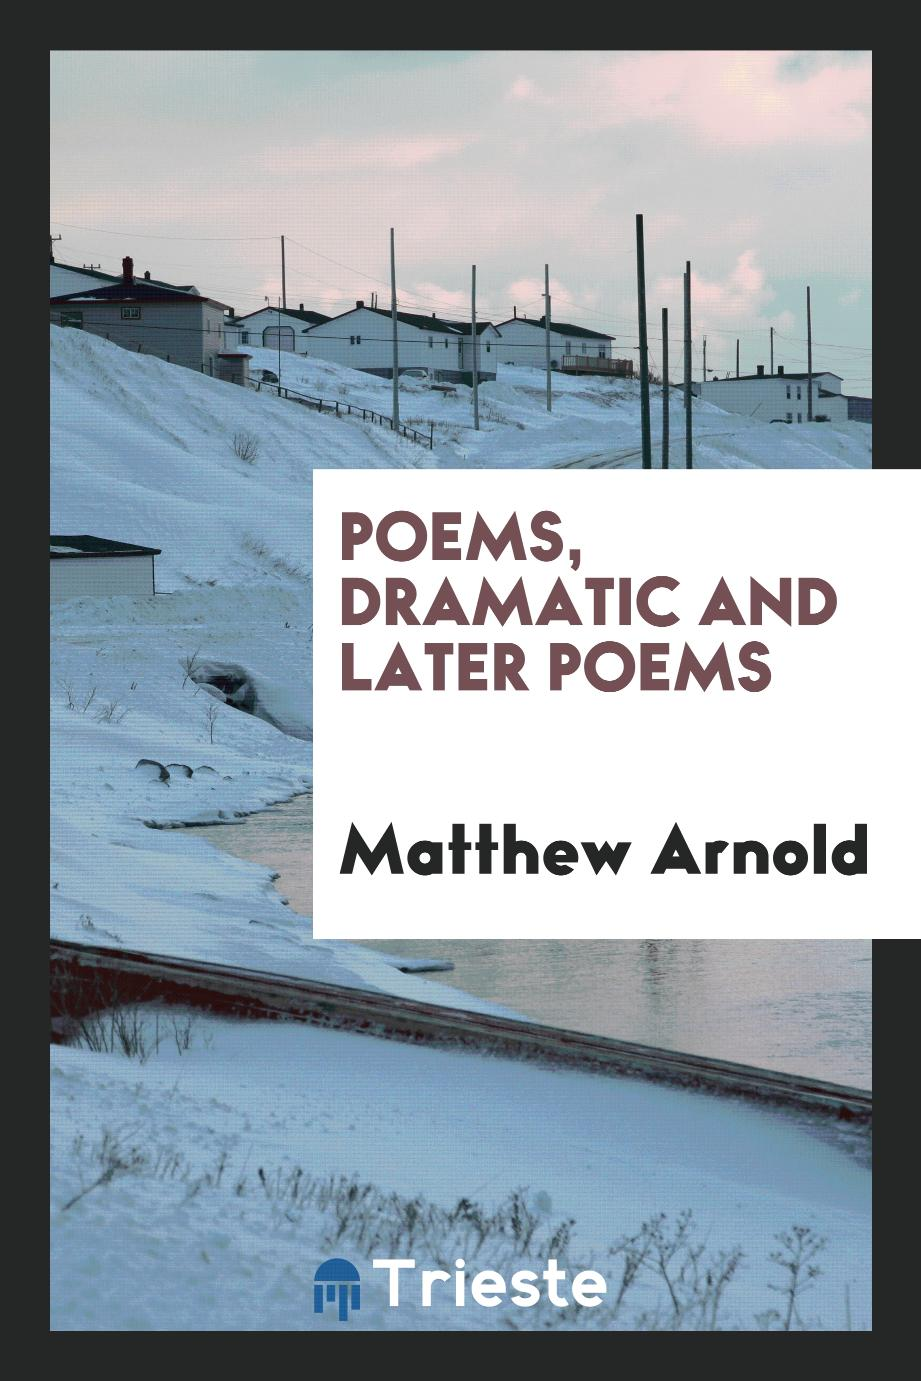 Poems, Dramatic and later poems